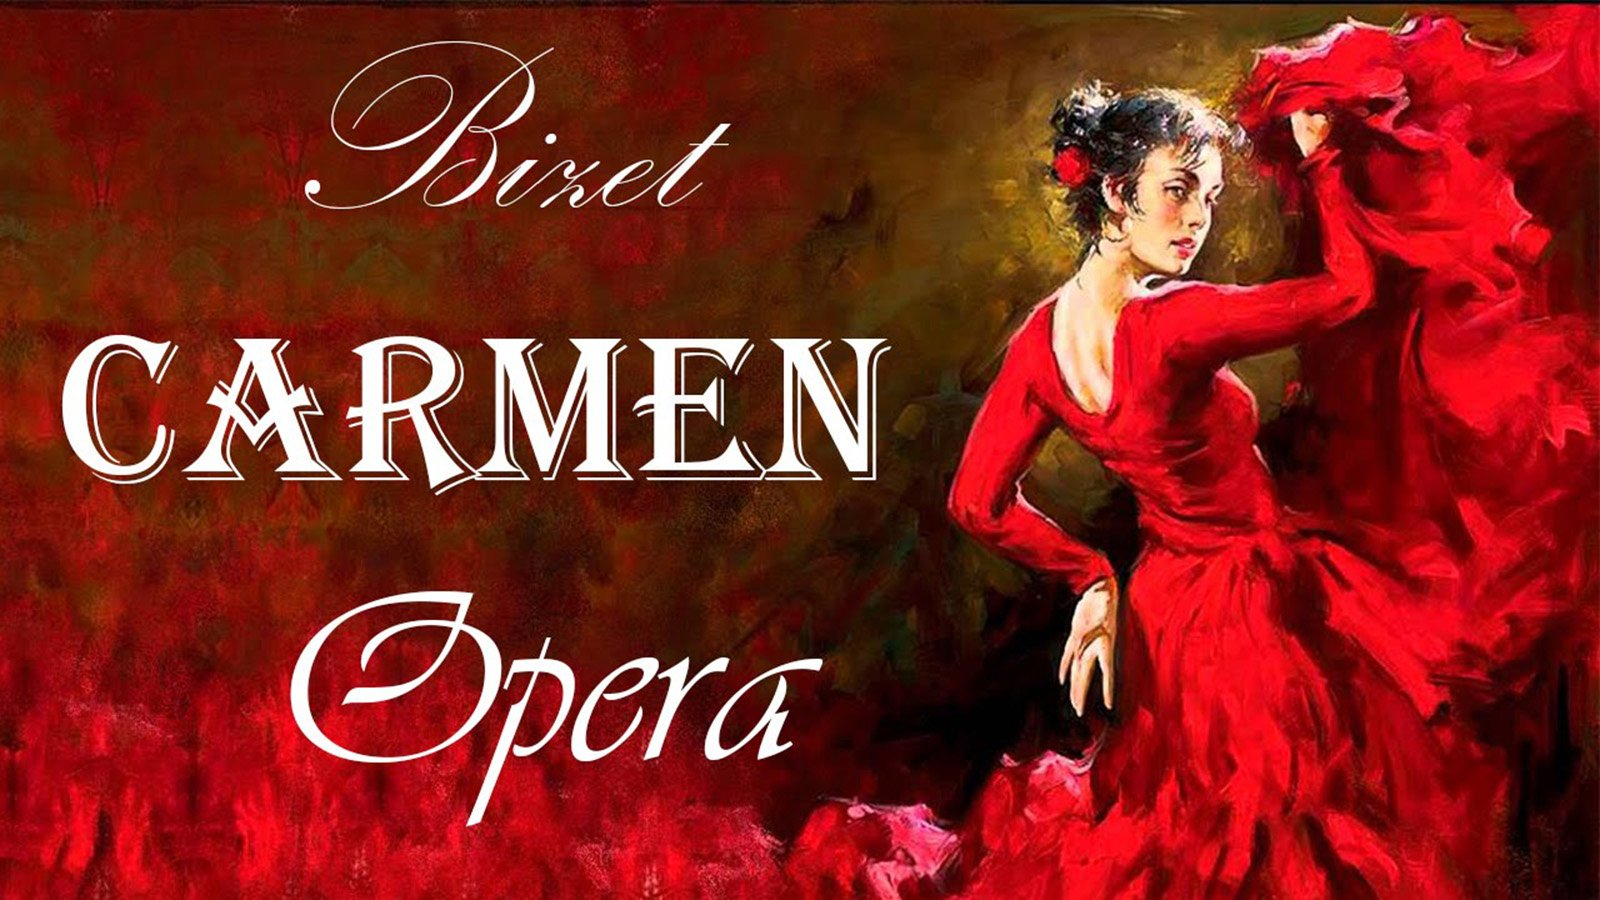 the life and works of georges bizet carmen Learn more about the composer georges bizet, his life and work in addition you can find audio samples, performances and music.